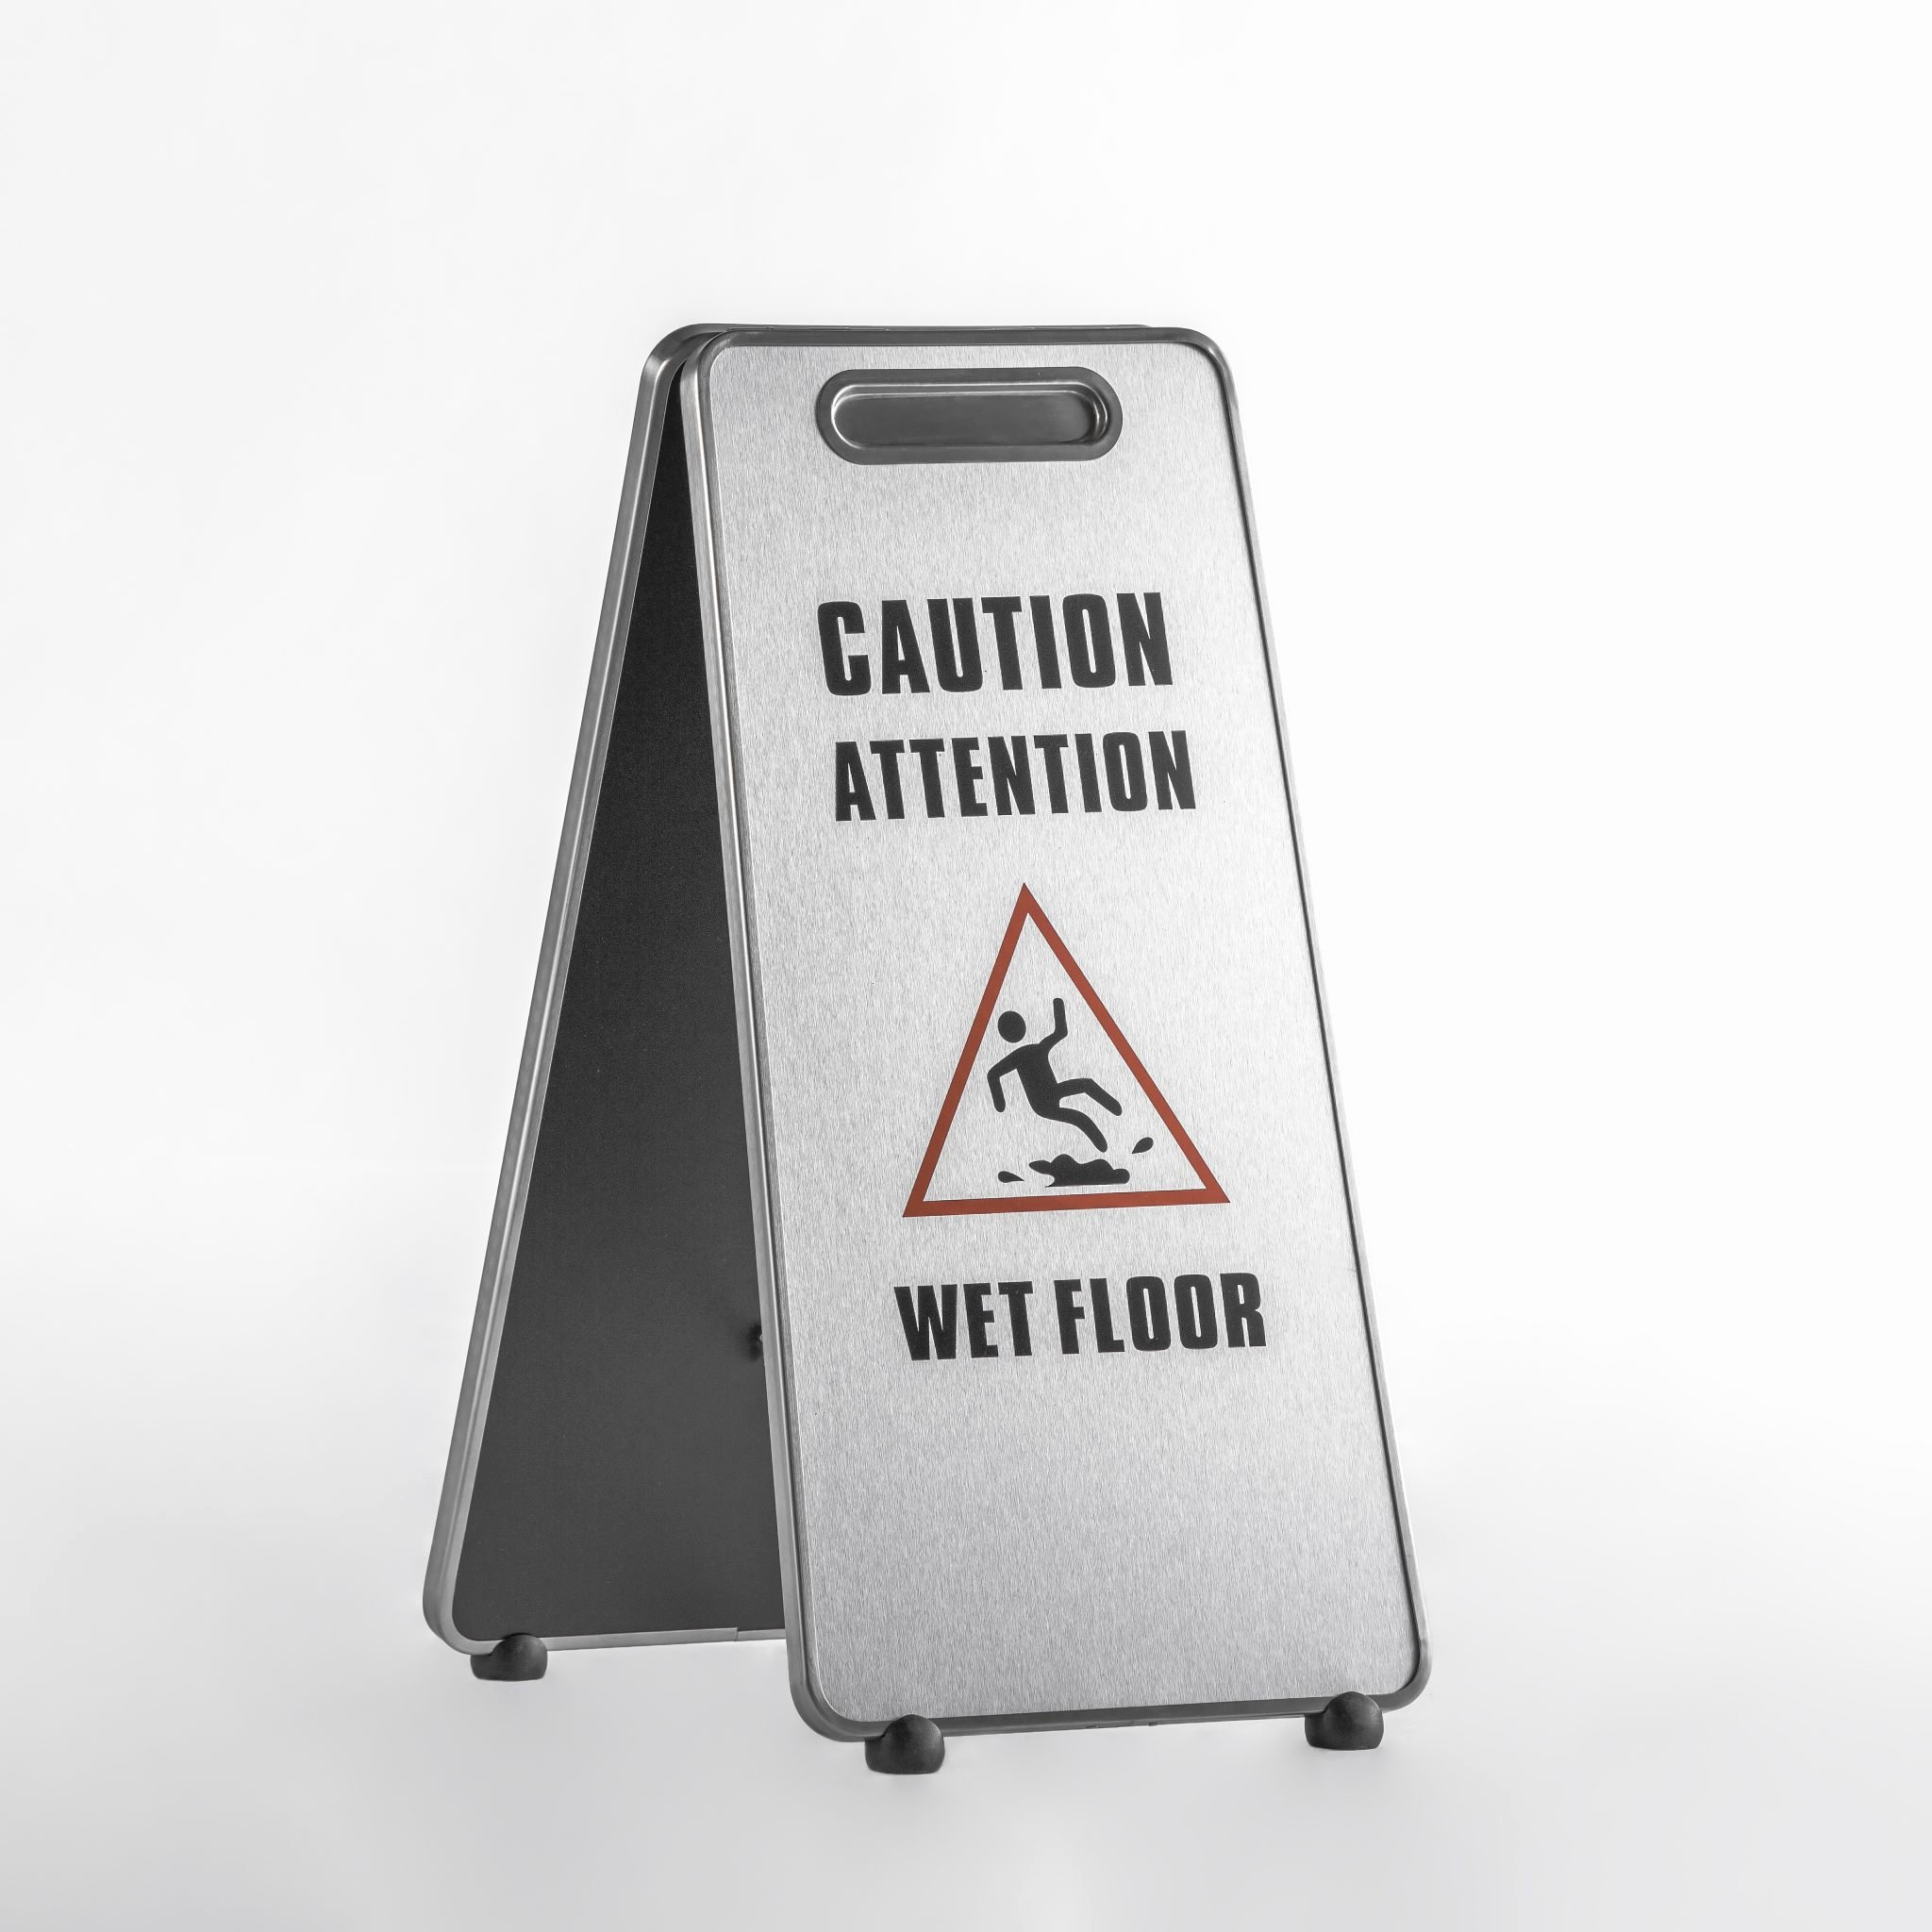 Wet Floor Signs Printable Unique Aluminum Caution Wet Floor Sign Caf 508 – Canaan